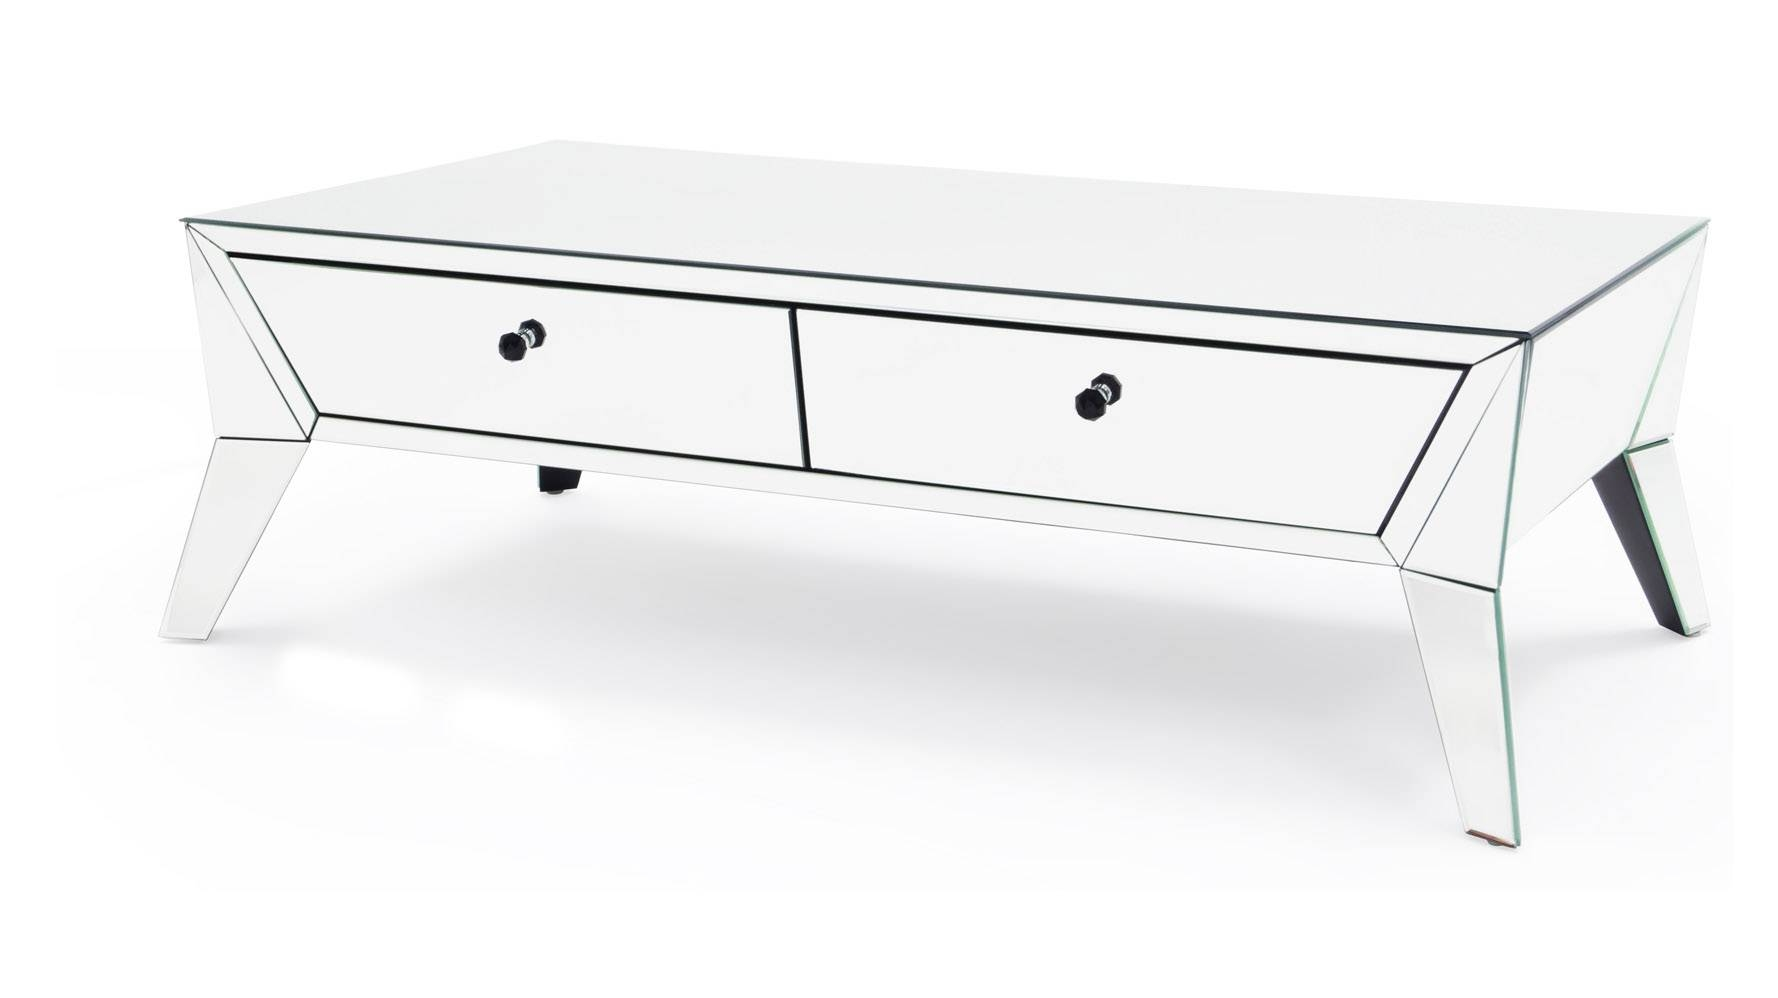 Lave Mirrored Glass Coffee Table | Zuri Furniture throughout Mirrored Coffee Tables (Image 16 of 30)